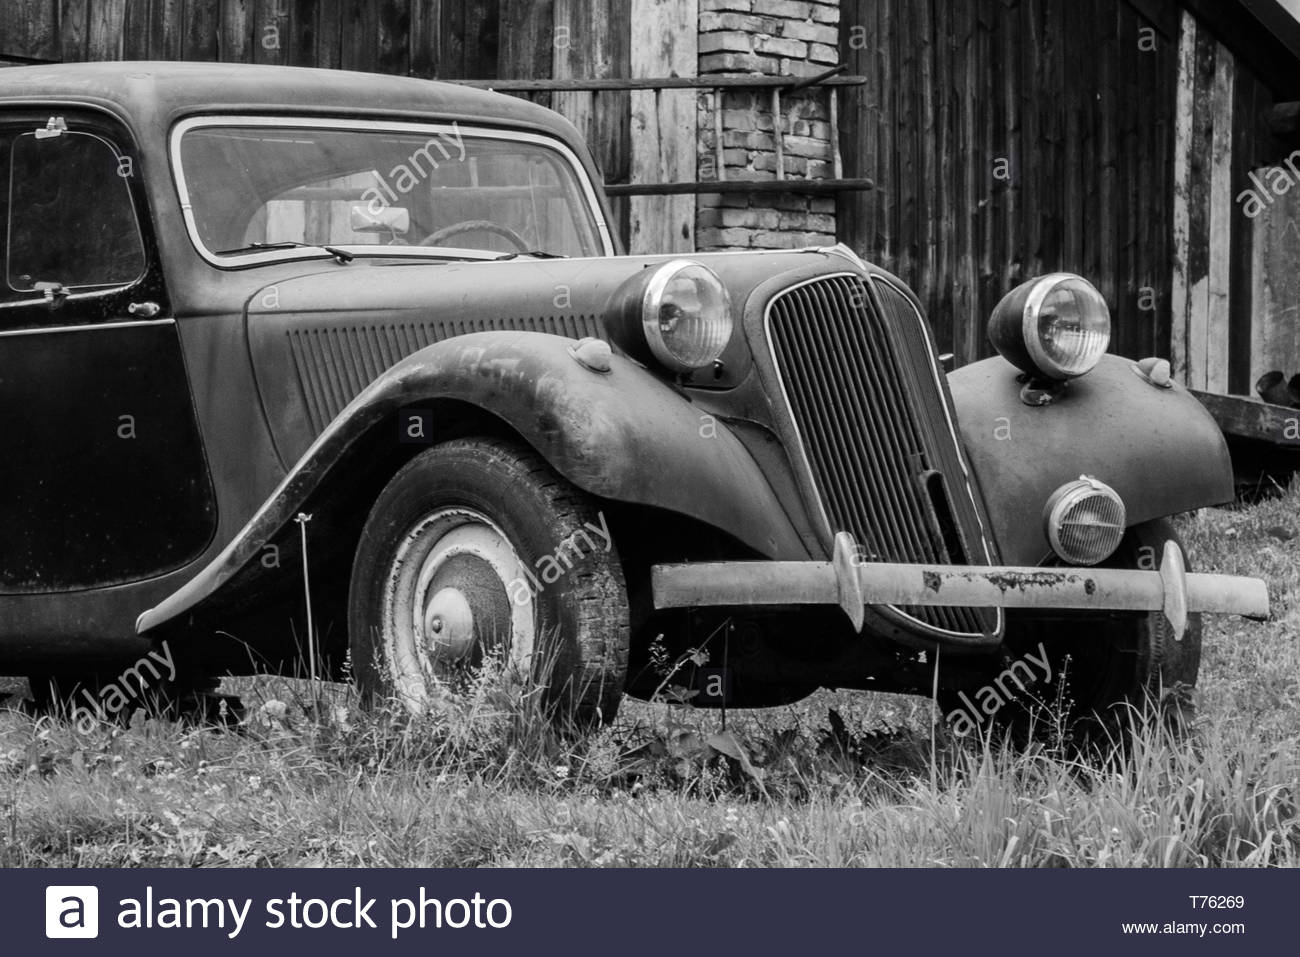 Old car, a wreck, an abandoned car, a historic car - Stock Image